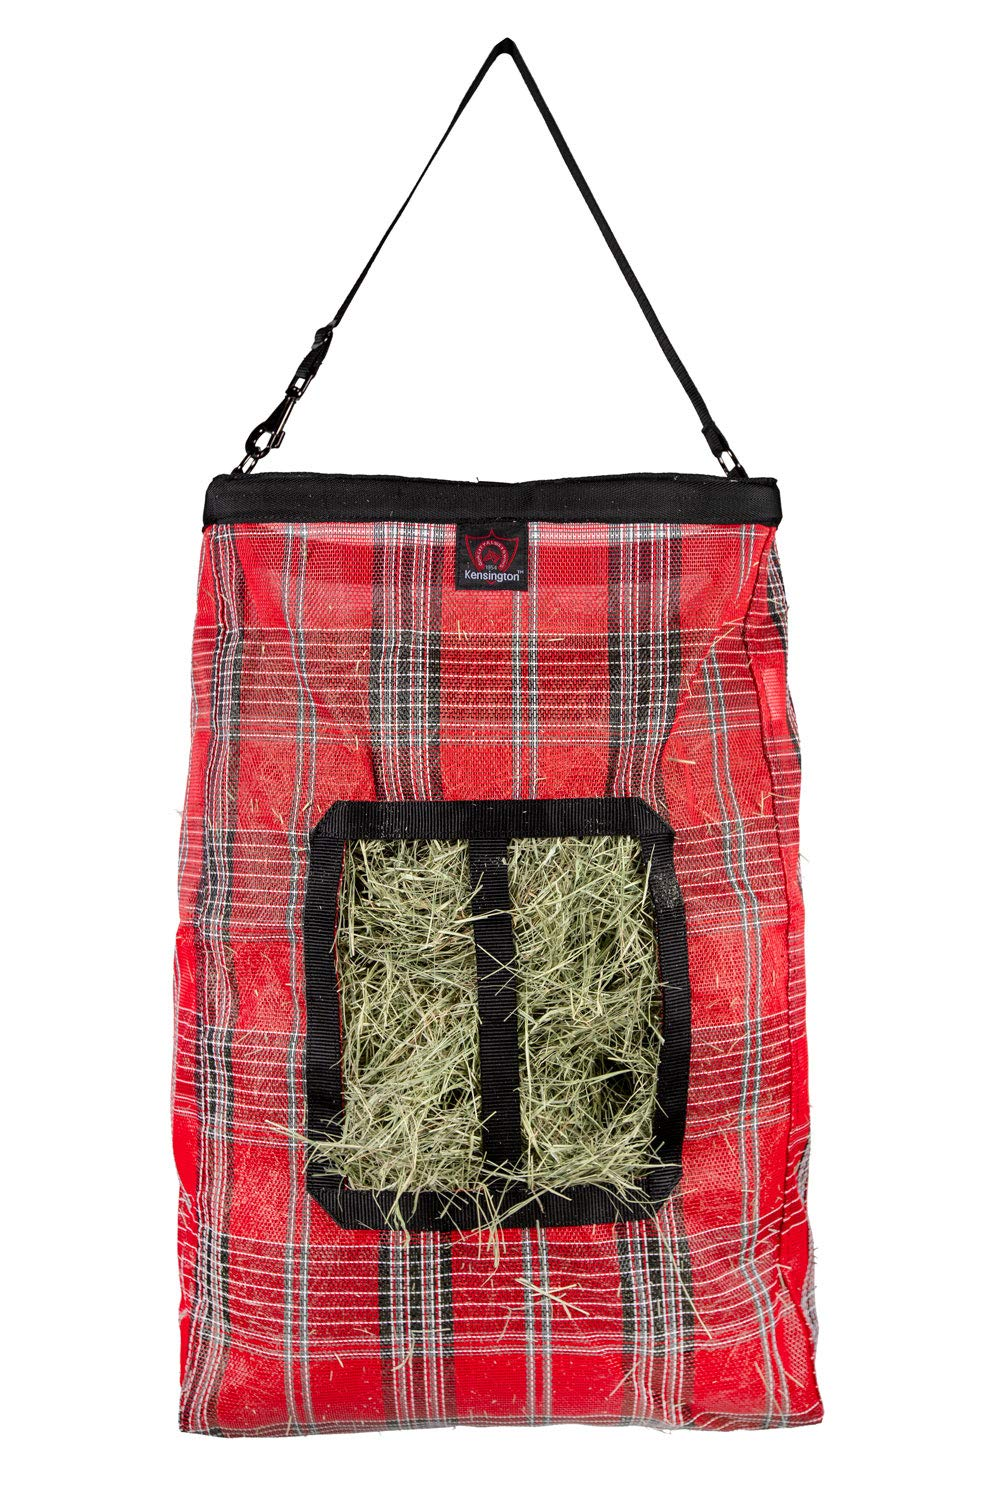 Kensington Hay Bag with Wire Rim - Sturdy Plastic Band Makes Loading Hay a Breeze - Holds Up to 2 Flake's by Kensington Protective Products